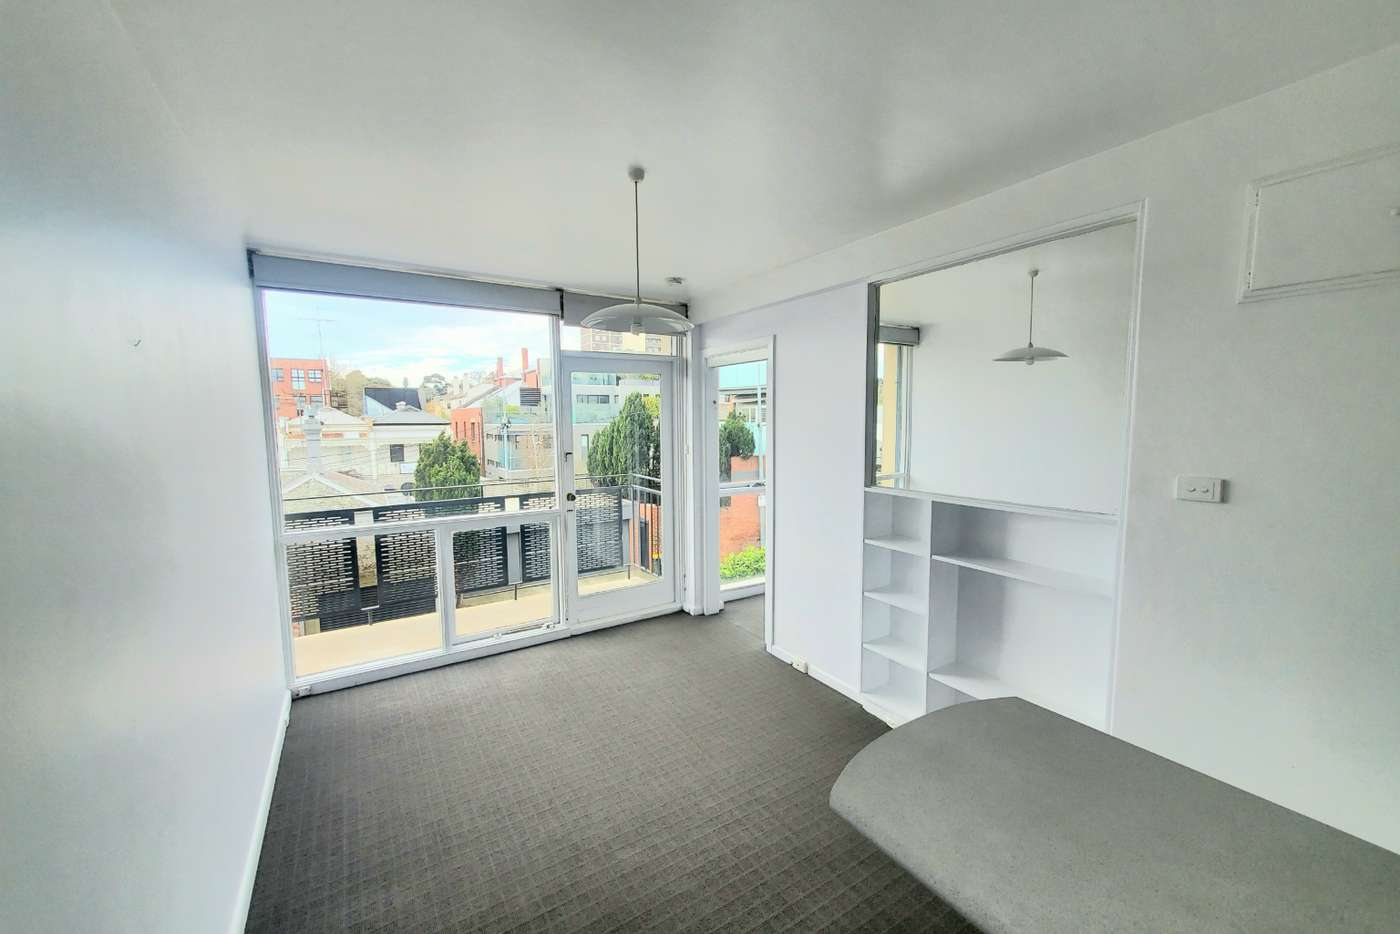 Main view of Homely apartment listing, 20/77 Park Street, South Yarra VIC 3141